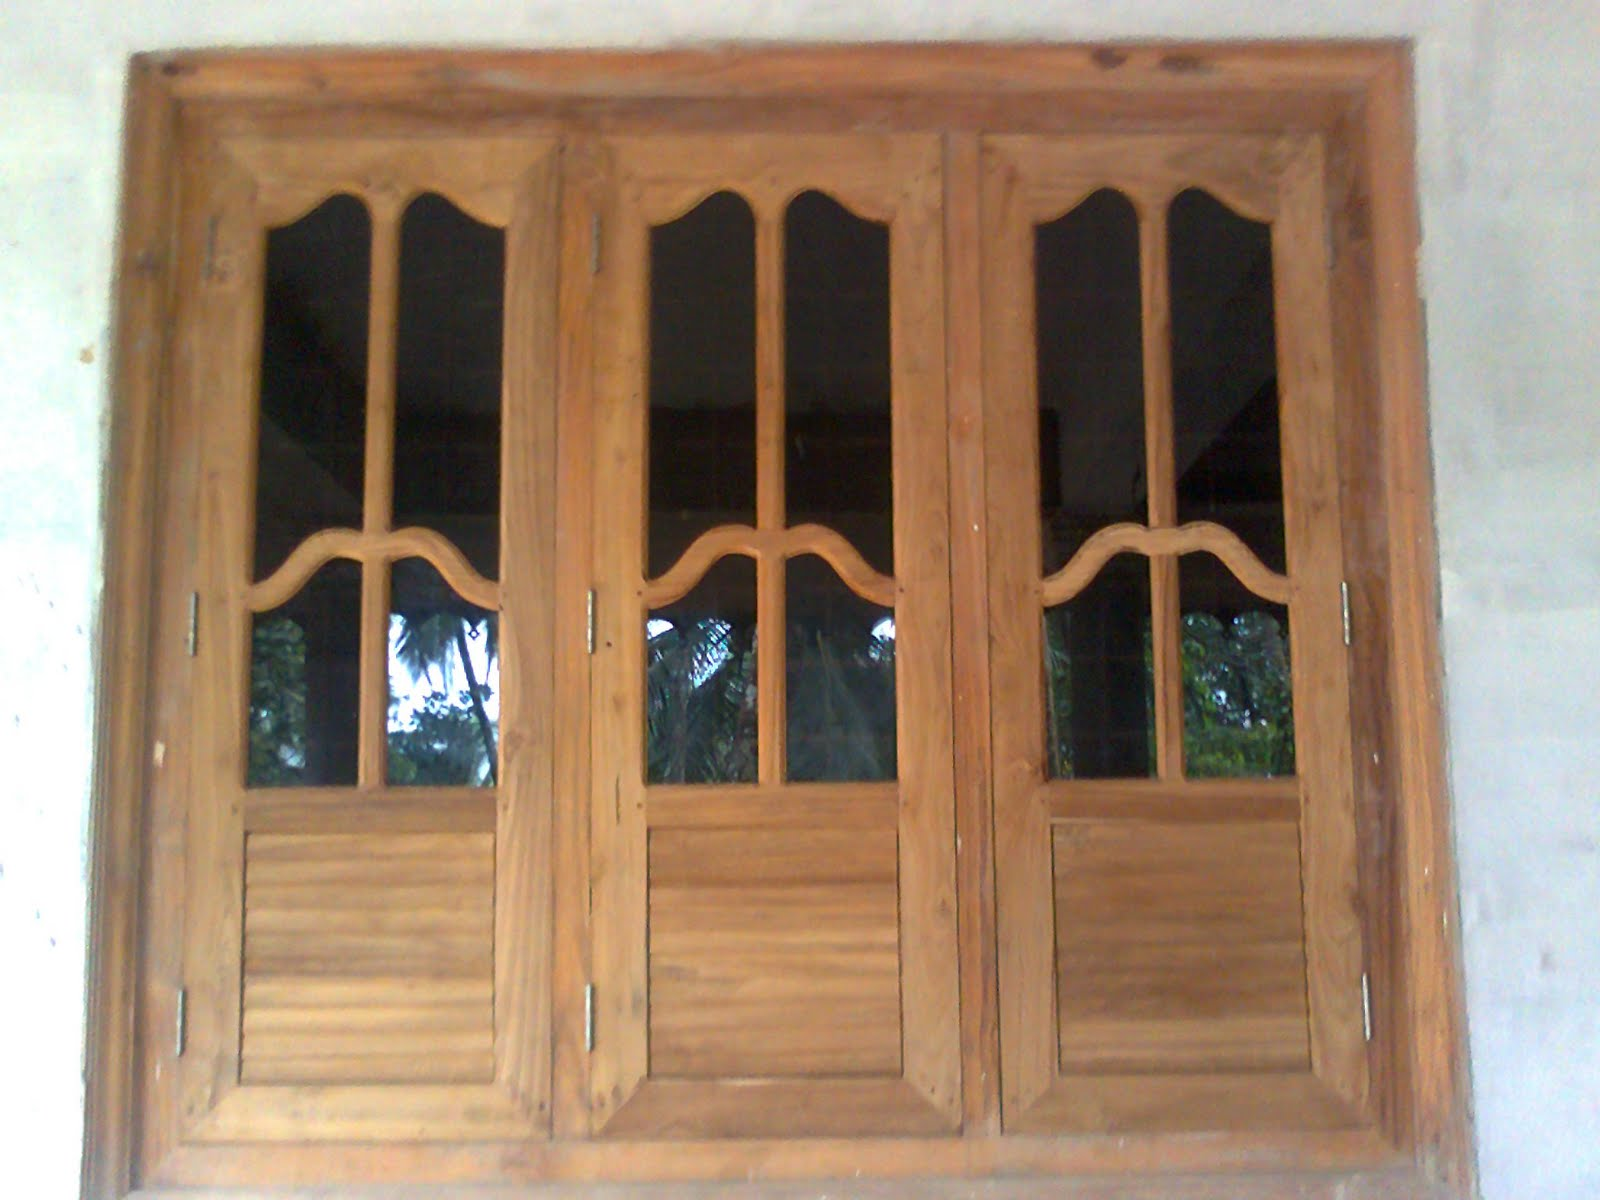 Bavas wood works wooden window doors simple designs for Glass windows and doors